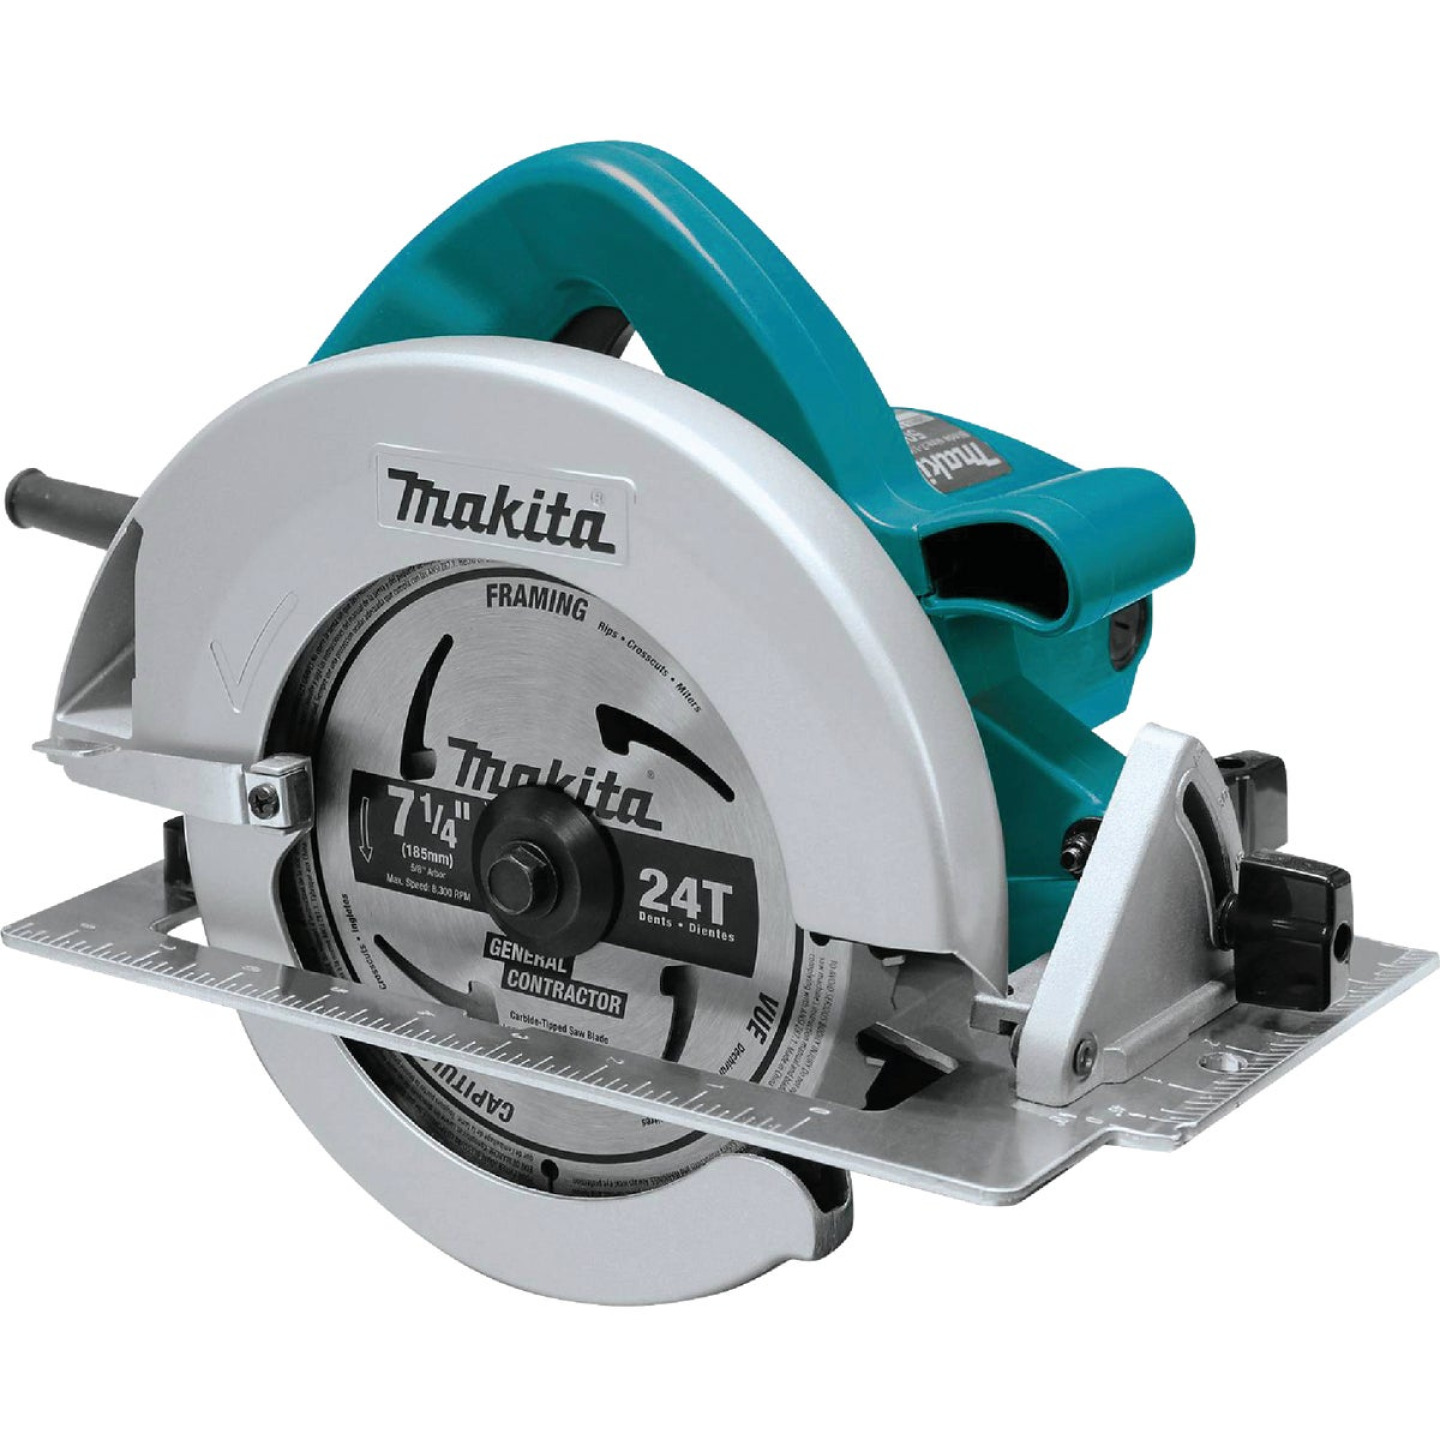 Makita 7-1/4 In. 15-Amp Contractor Circular Saw Image 1